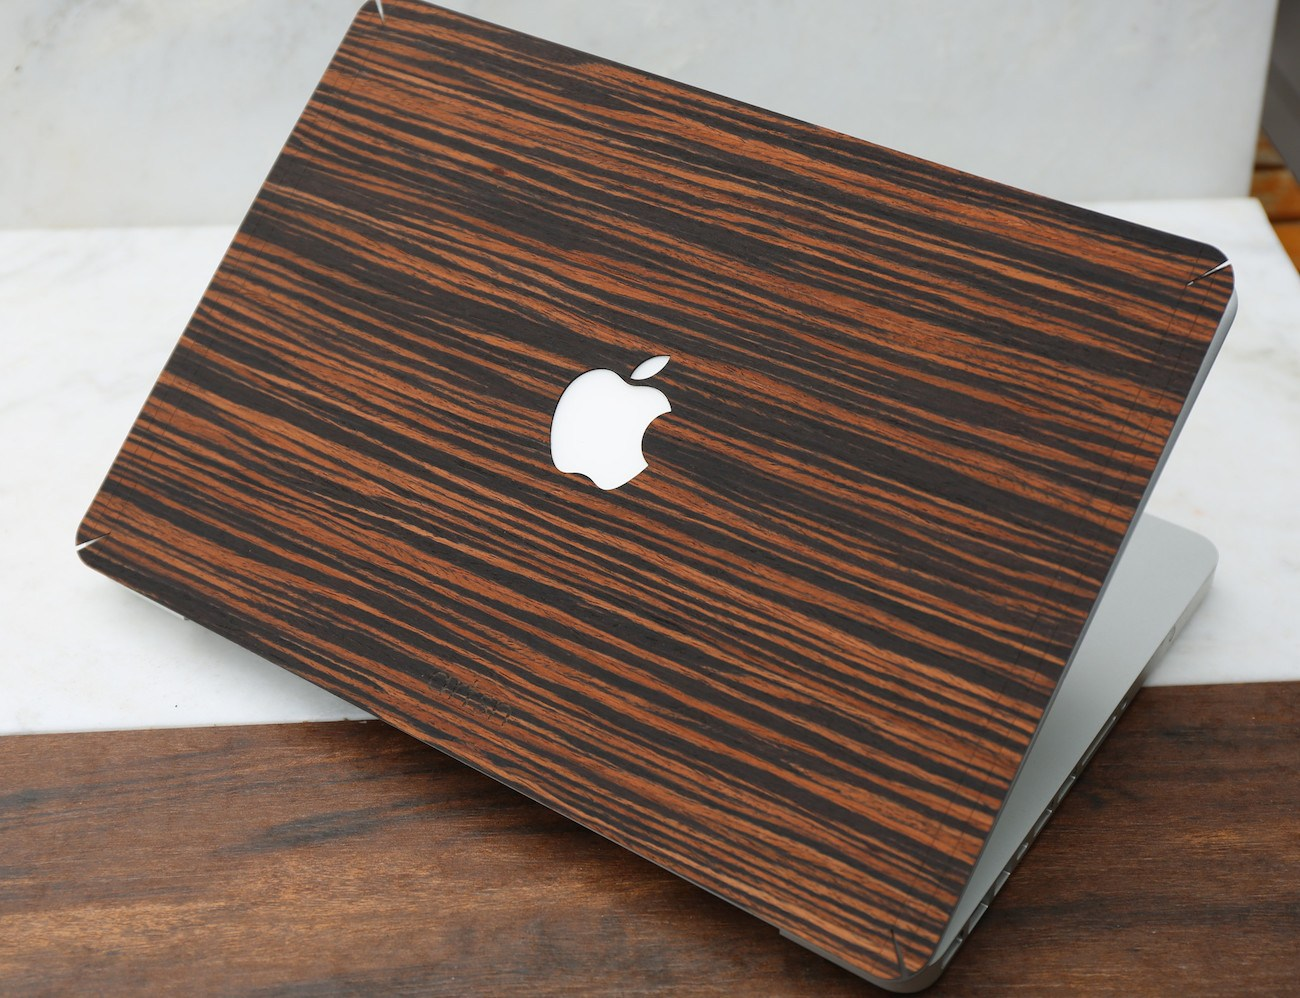 Ebony Wood MacBook Skin